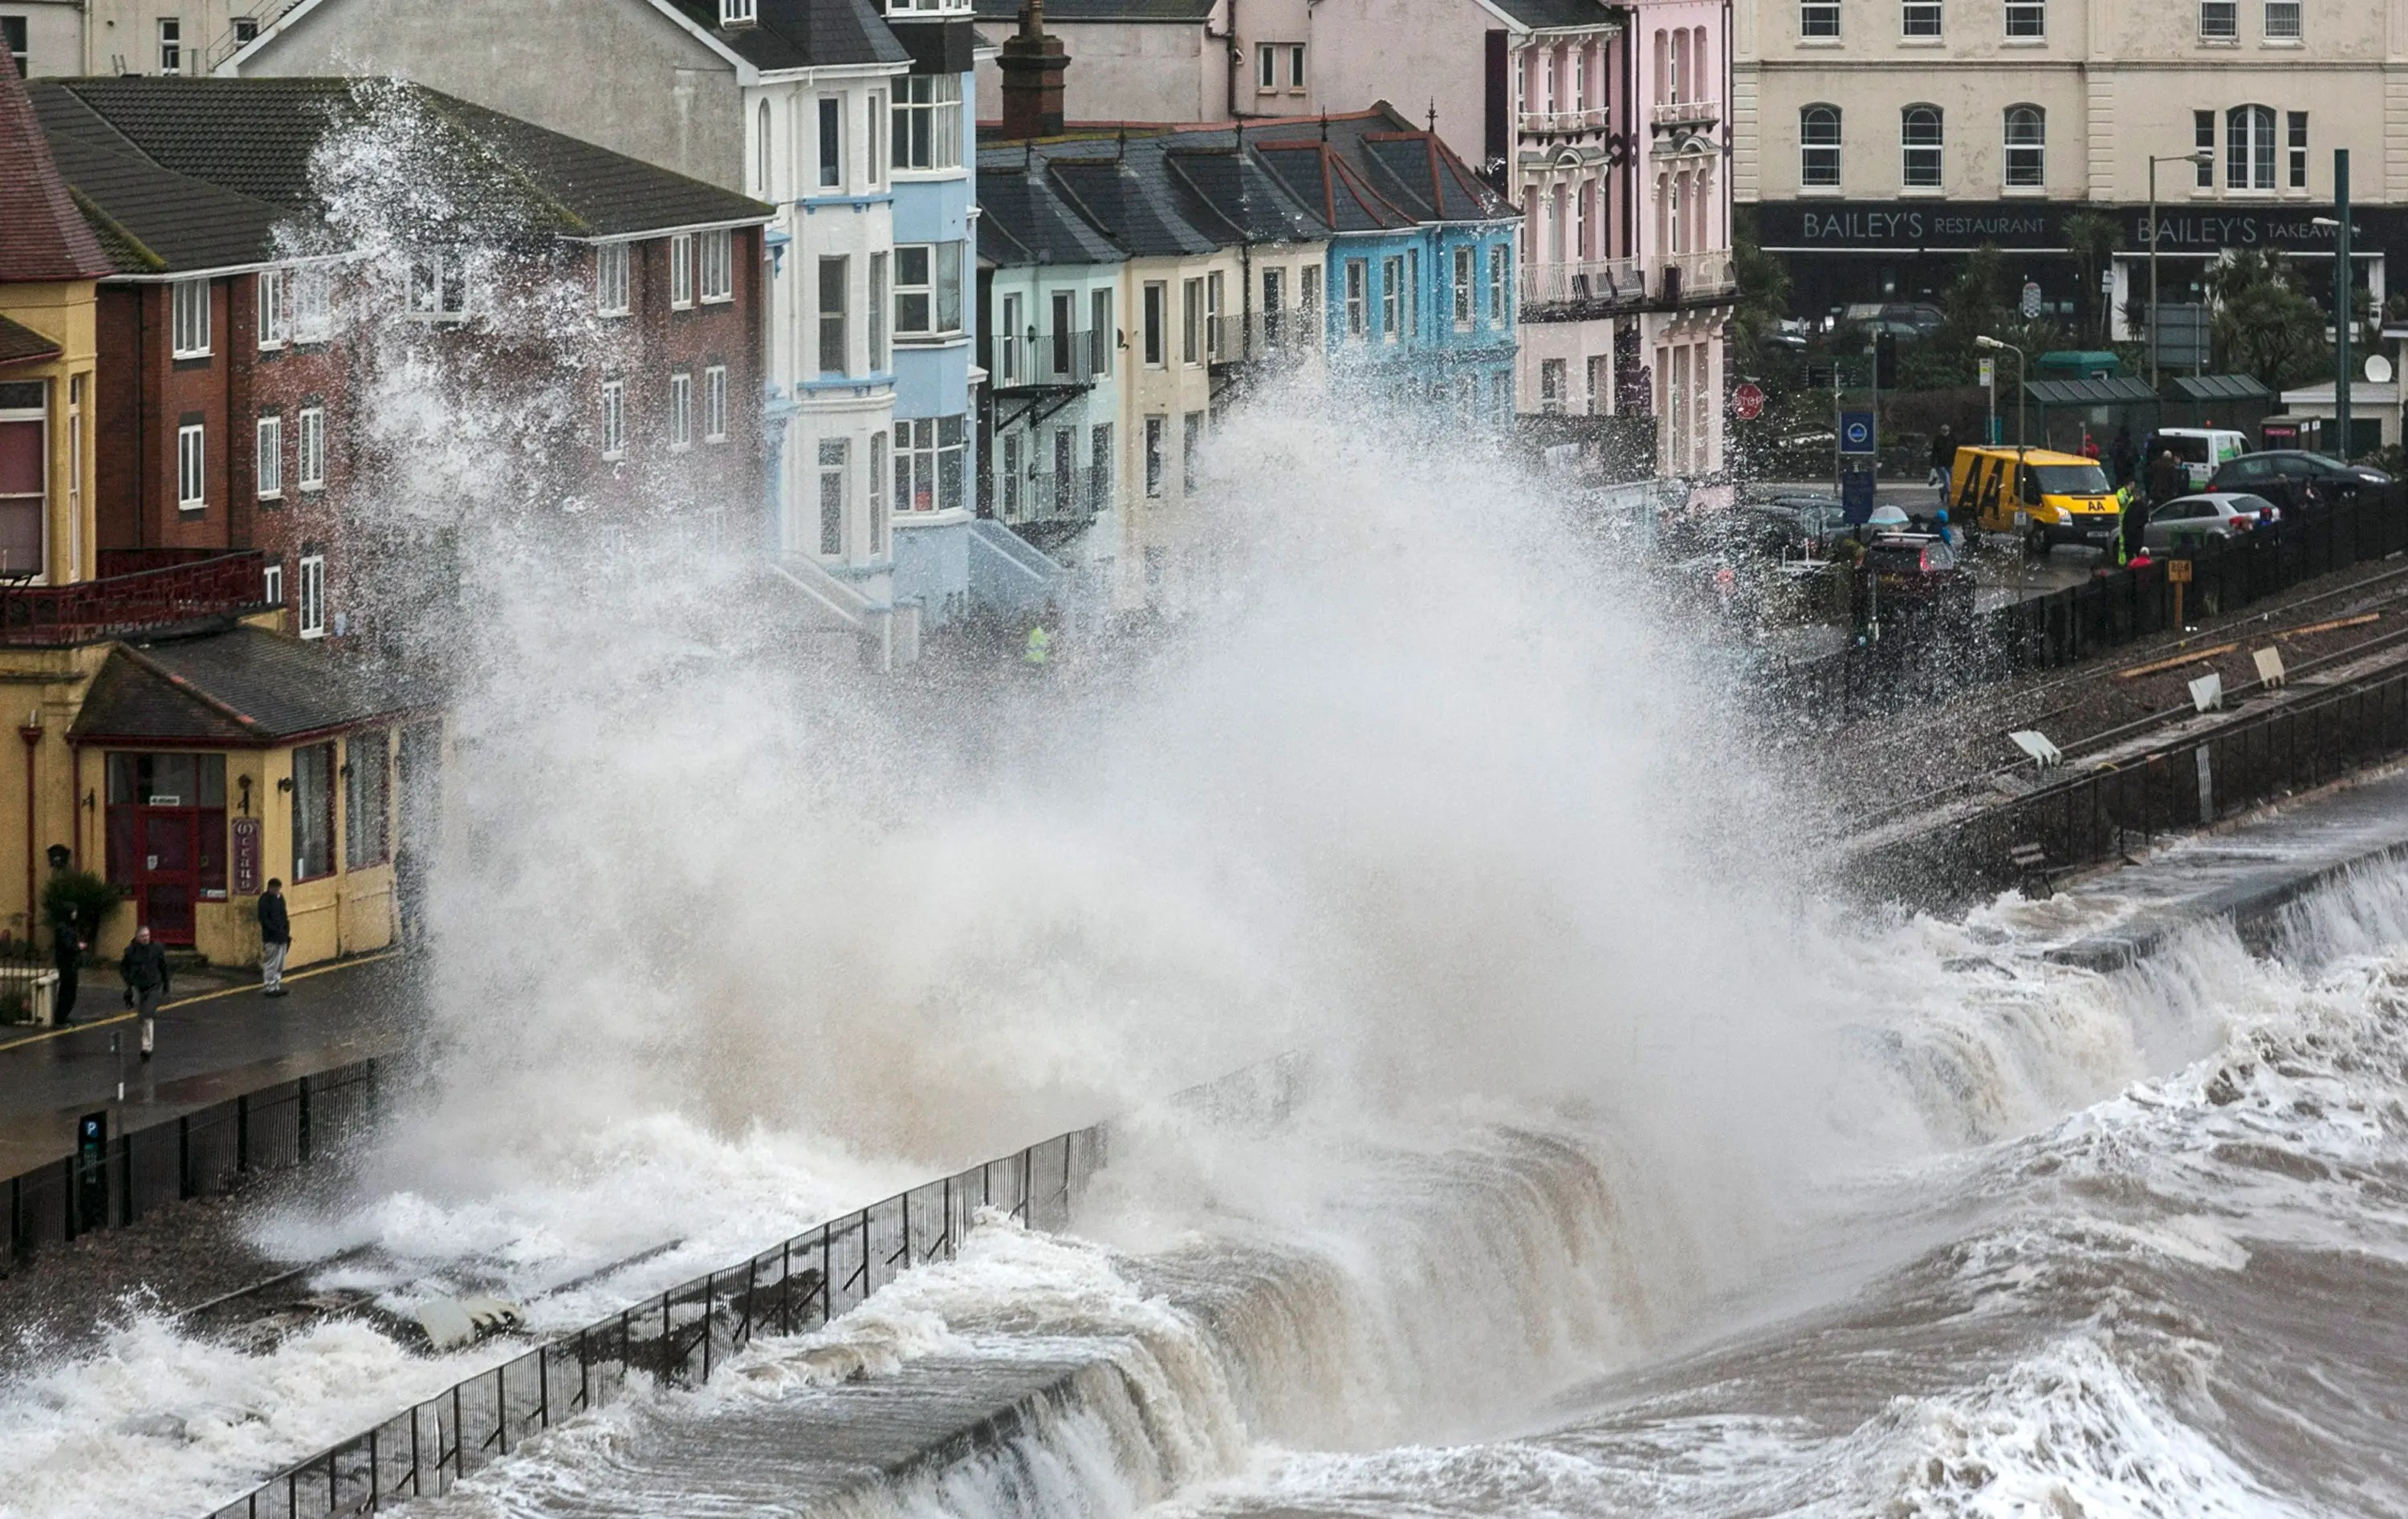 Massive floods caused by a giant storm hit the UK in February.